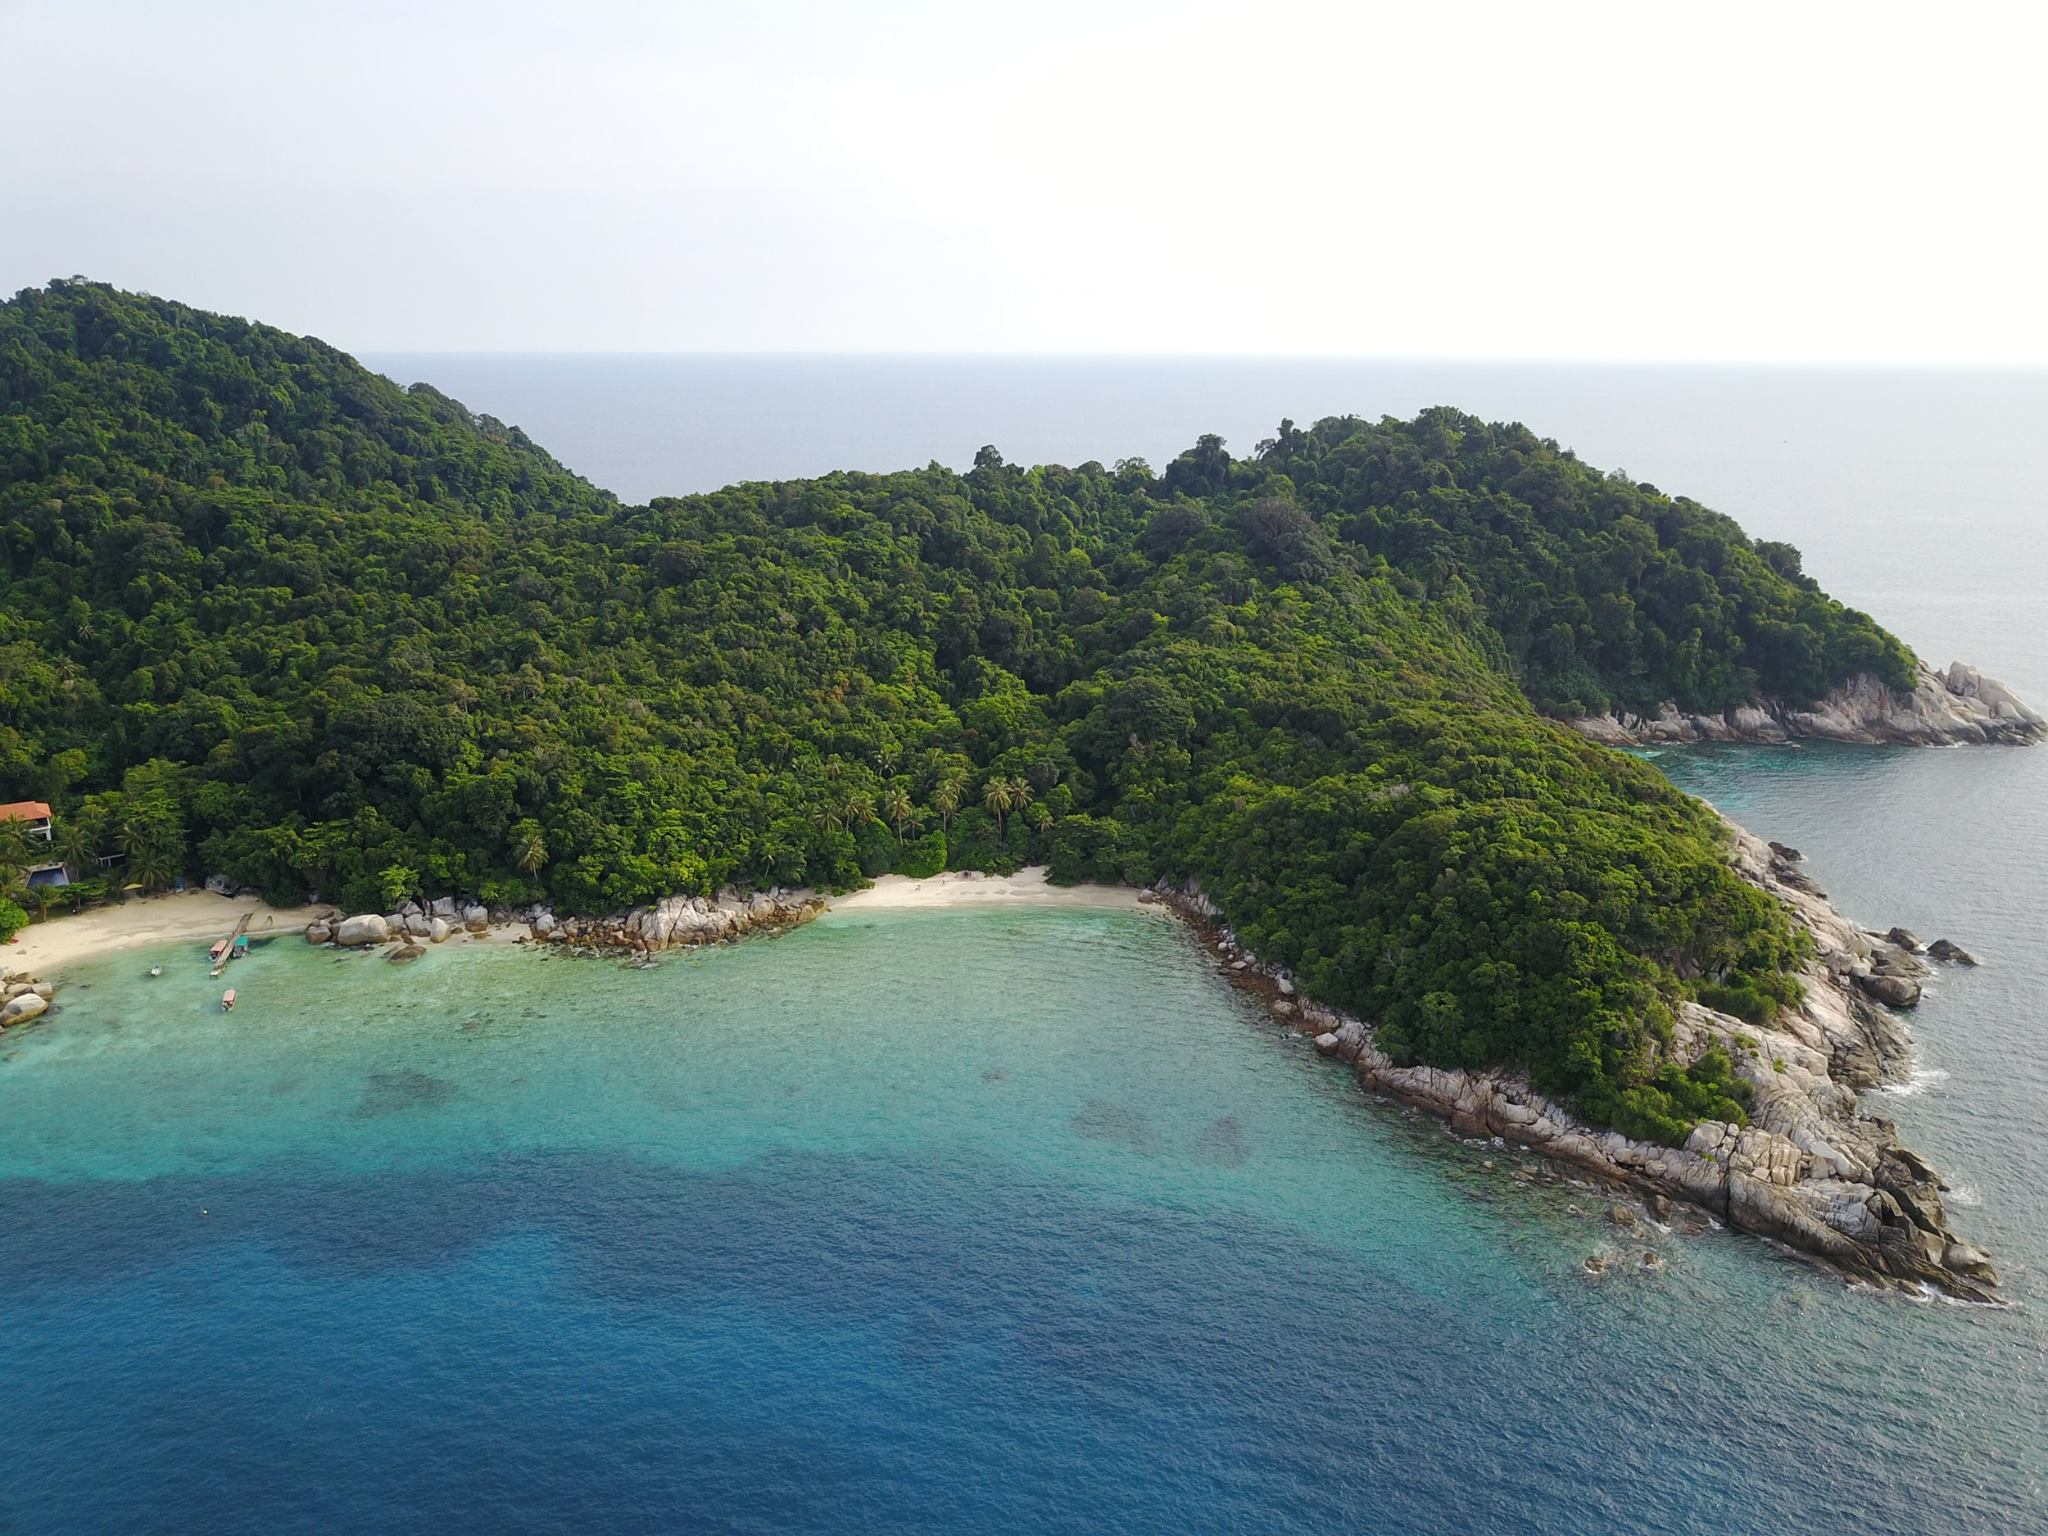 Aerial view of the largely undeveloped island.